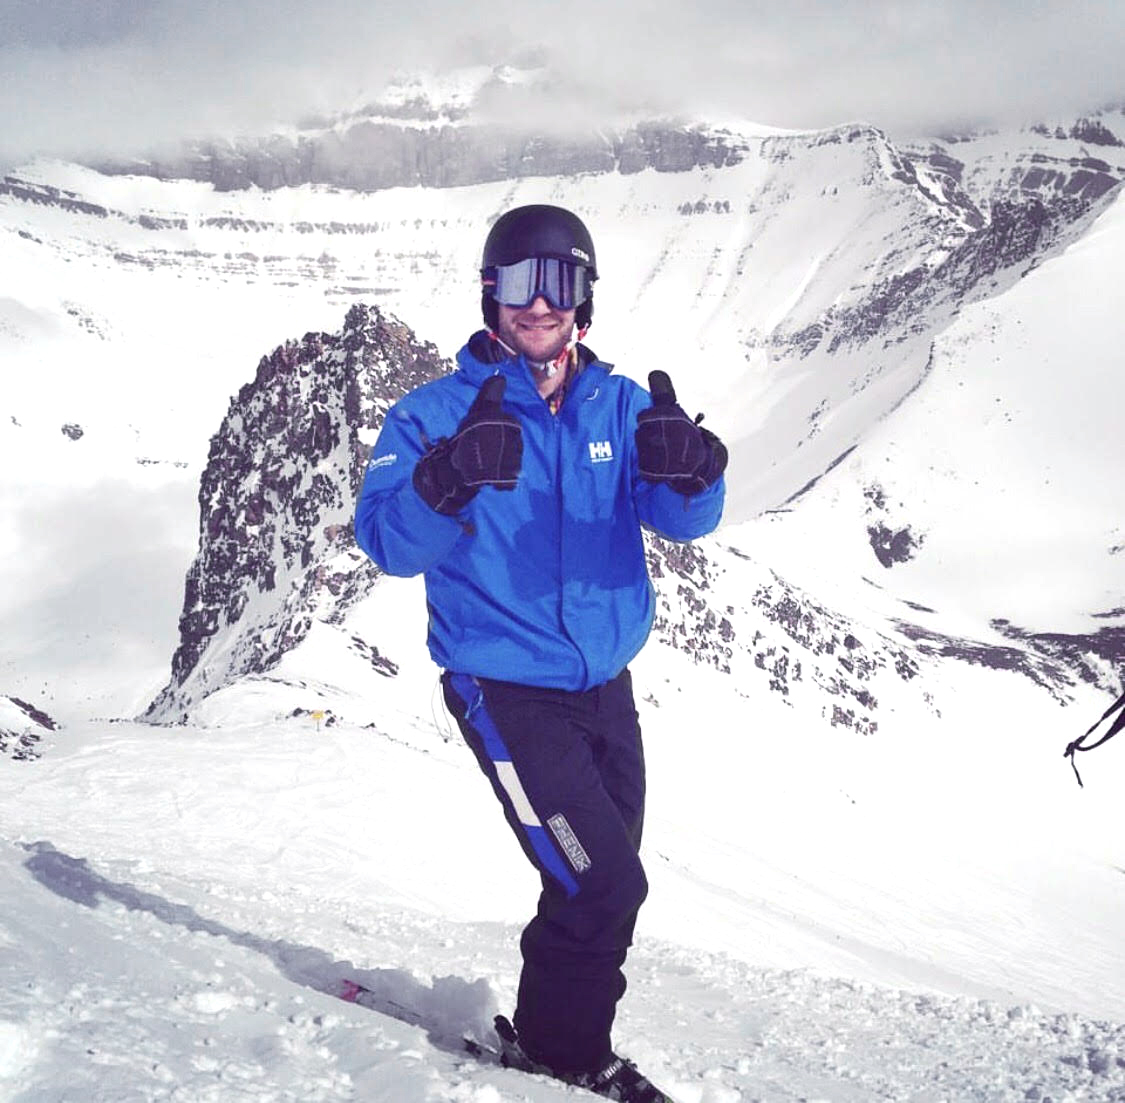 David Guttman - Adventure Ambassador / guideSkier | cyclist | mountain bikerHaving lived in Vermont for six years, he is an avid skier who is just as happy on east coast ice as he is in the back-country, and claims to be more coordinated on skis than on foot. While winter sports are his first love, he also enjoys hiking, road and mountain biking, and anything involving the ocean, rivers or lakes. Now living in the East Village he even finds time to grow a small garden on his roof.